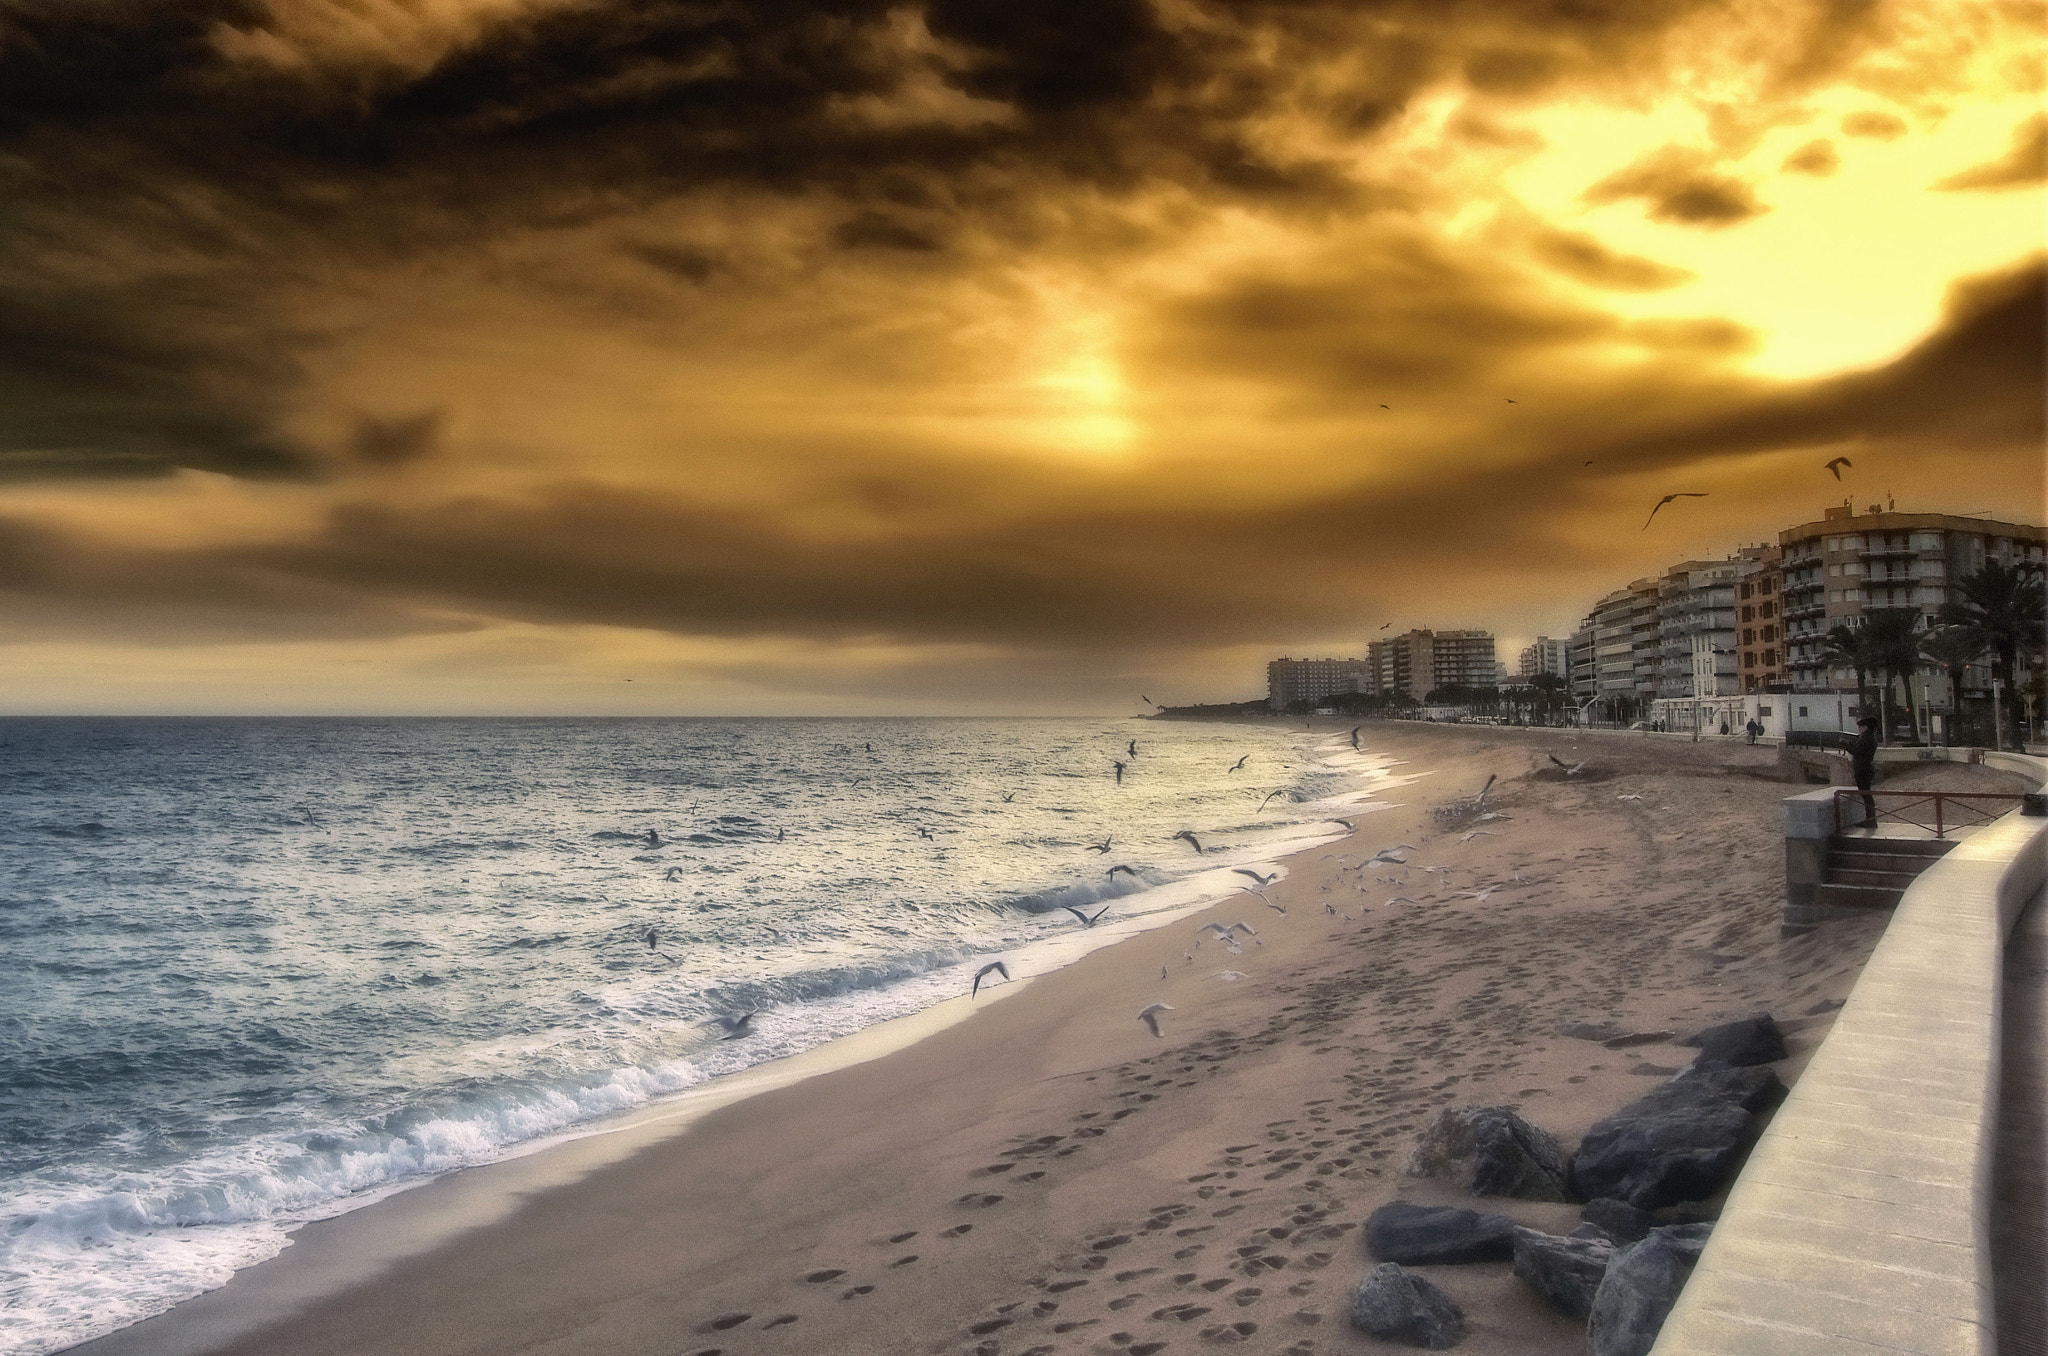 Photograph Blanes by joe00064 on 500px